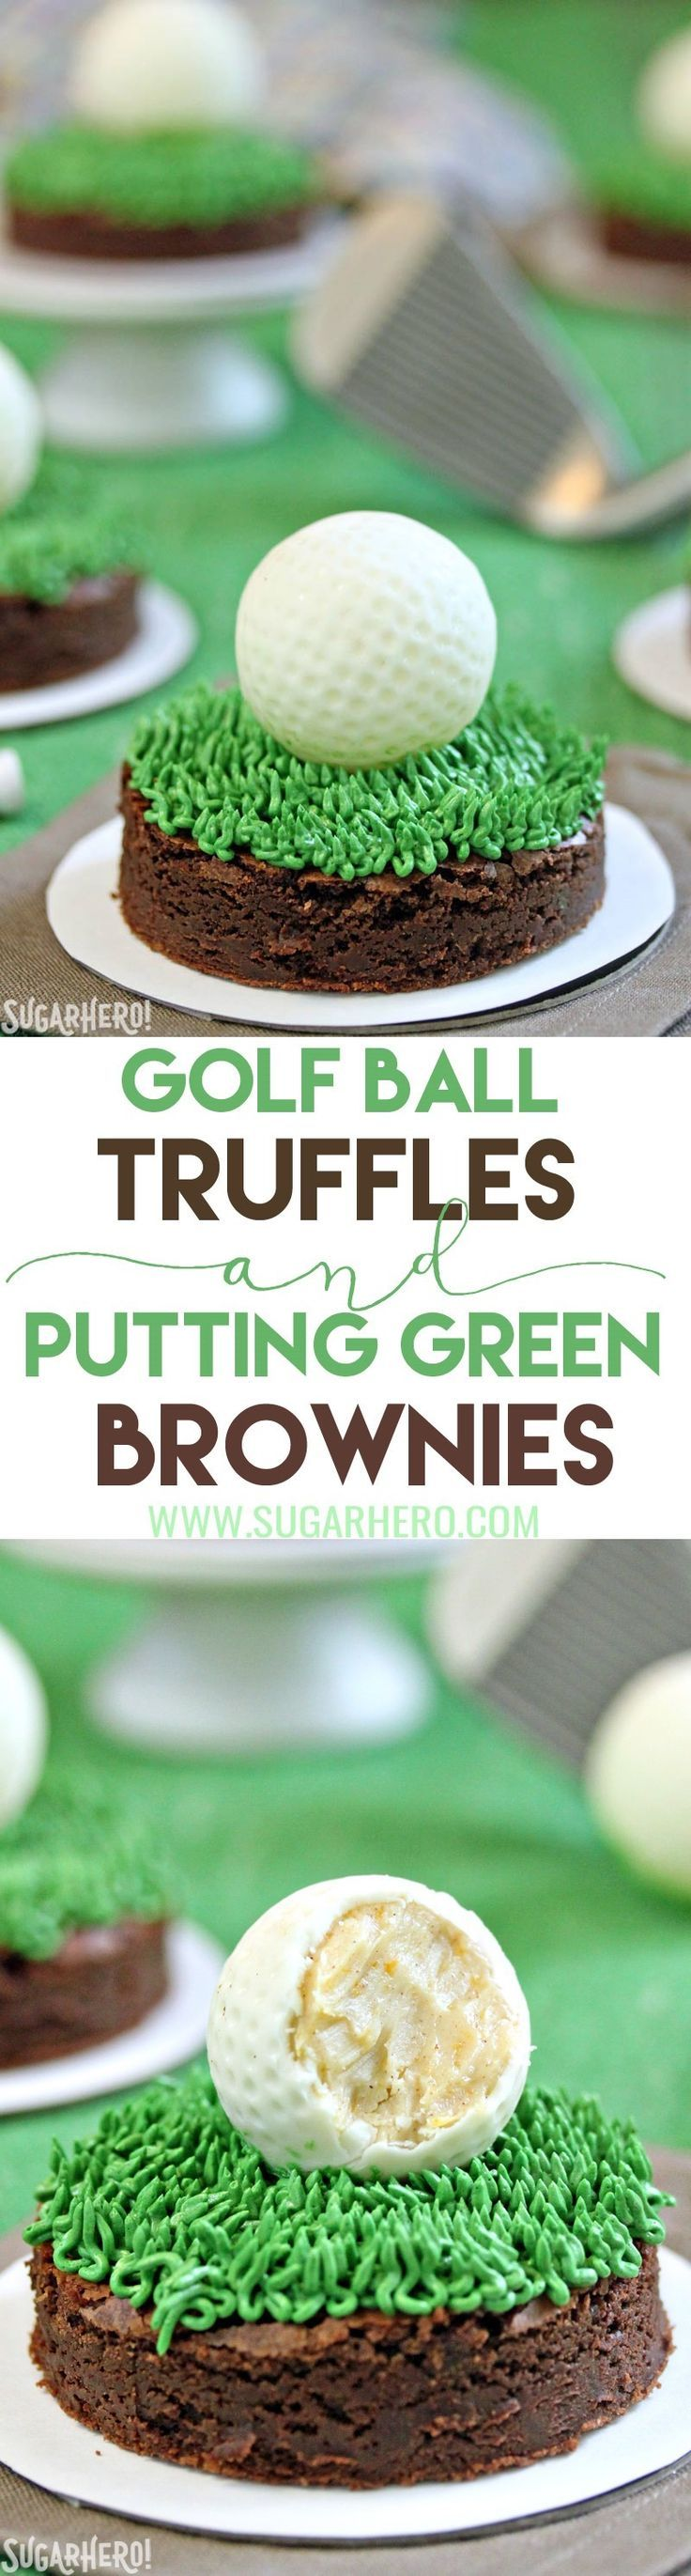 Golf Ball Truffles and Putting Green Brownies - white chocolate rum truffles that look just like golf balls! Put them on putting green brownies to make the cutest dessert ever. | From SugarHero.com